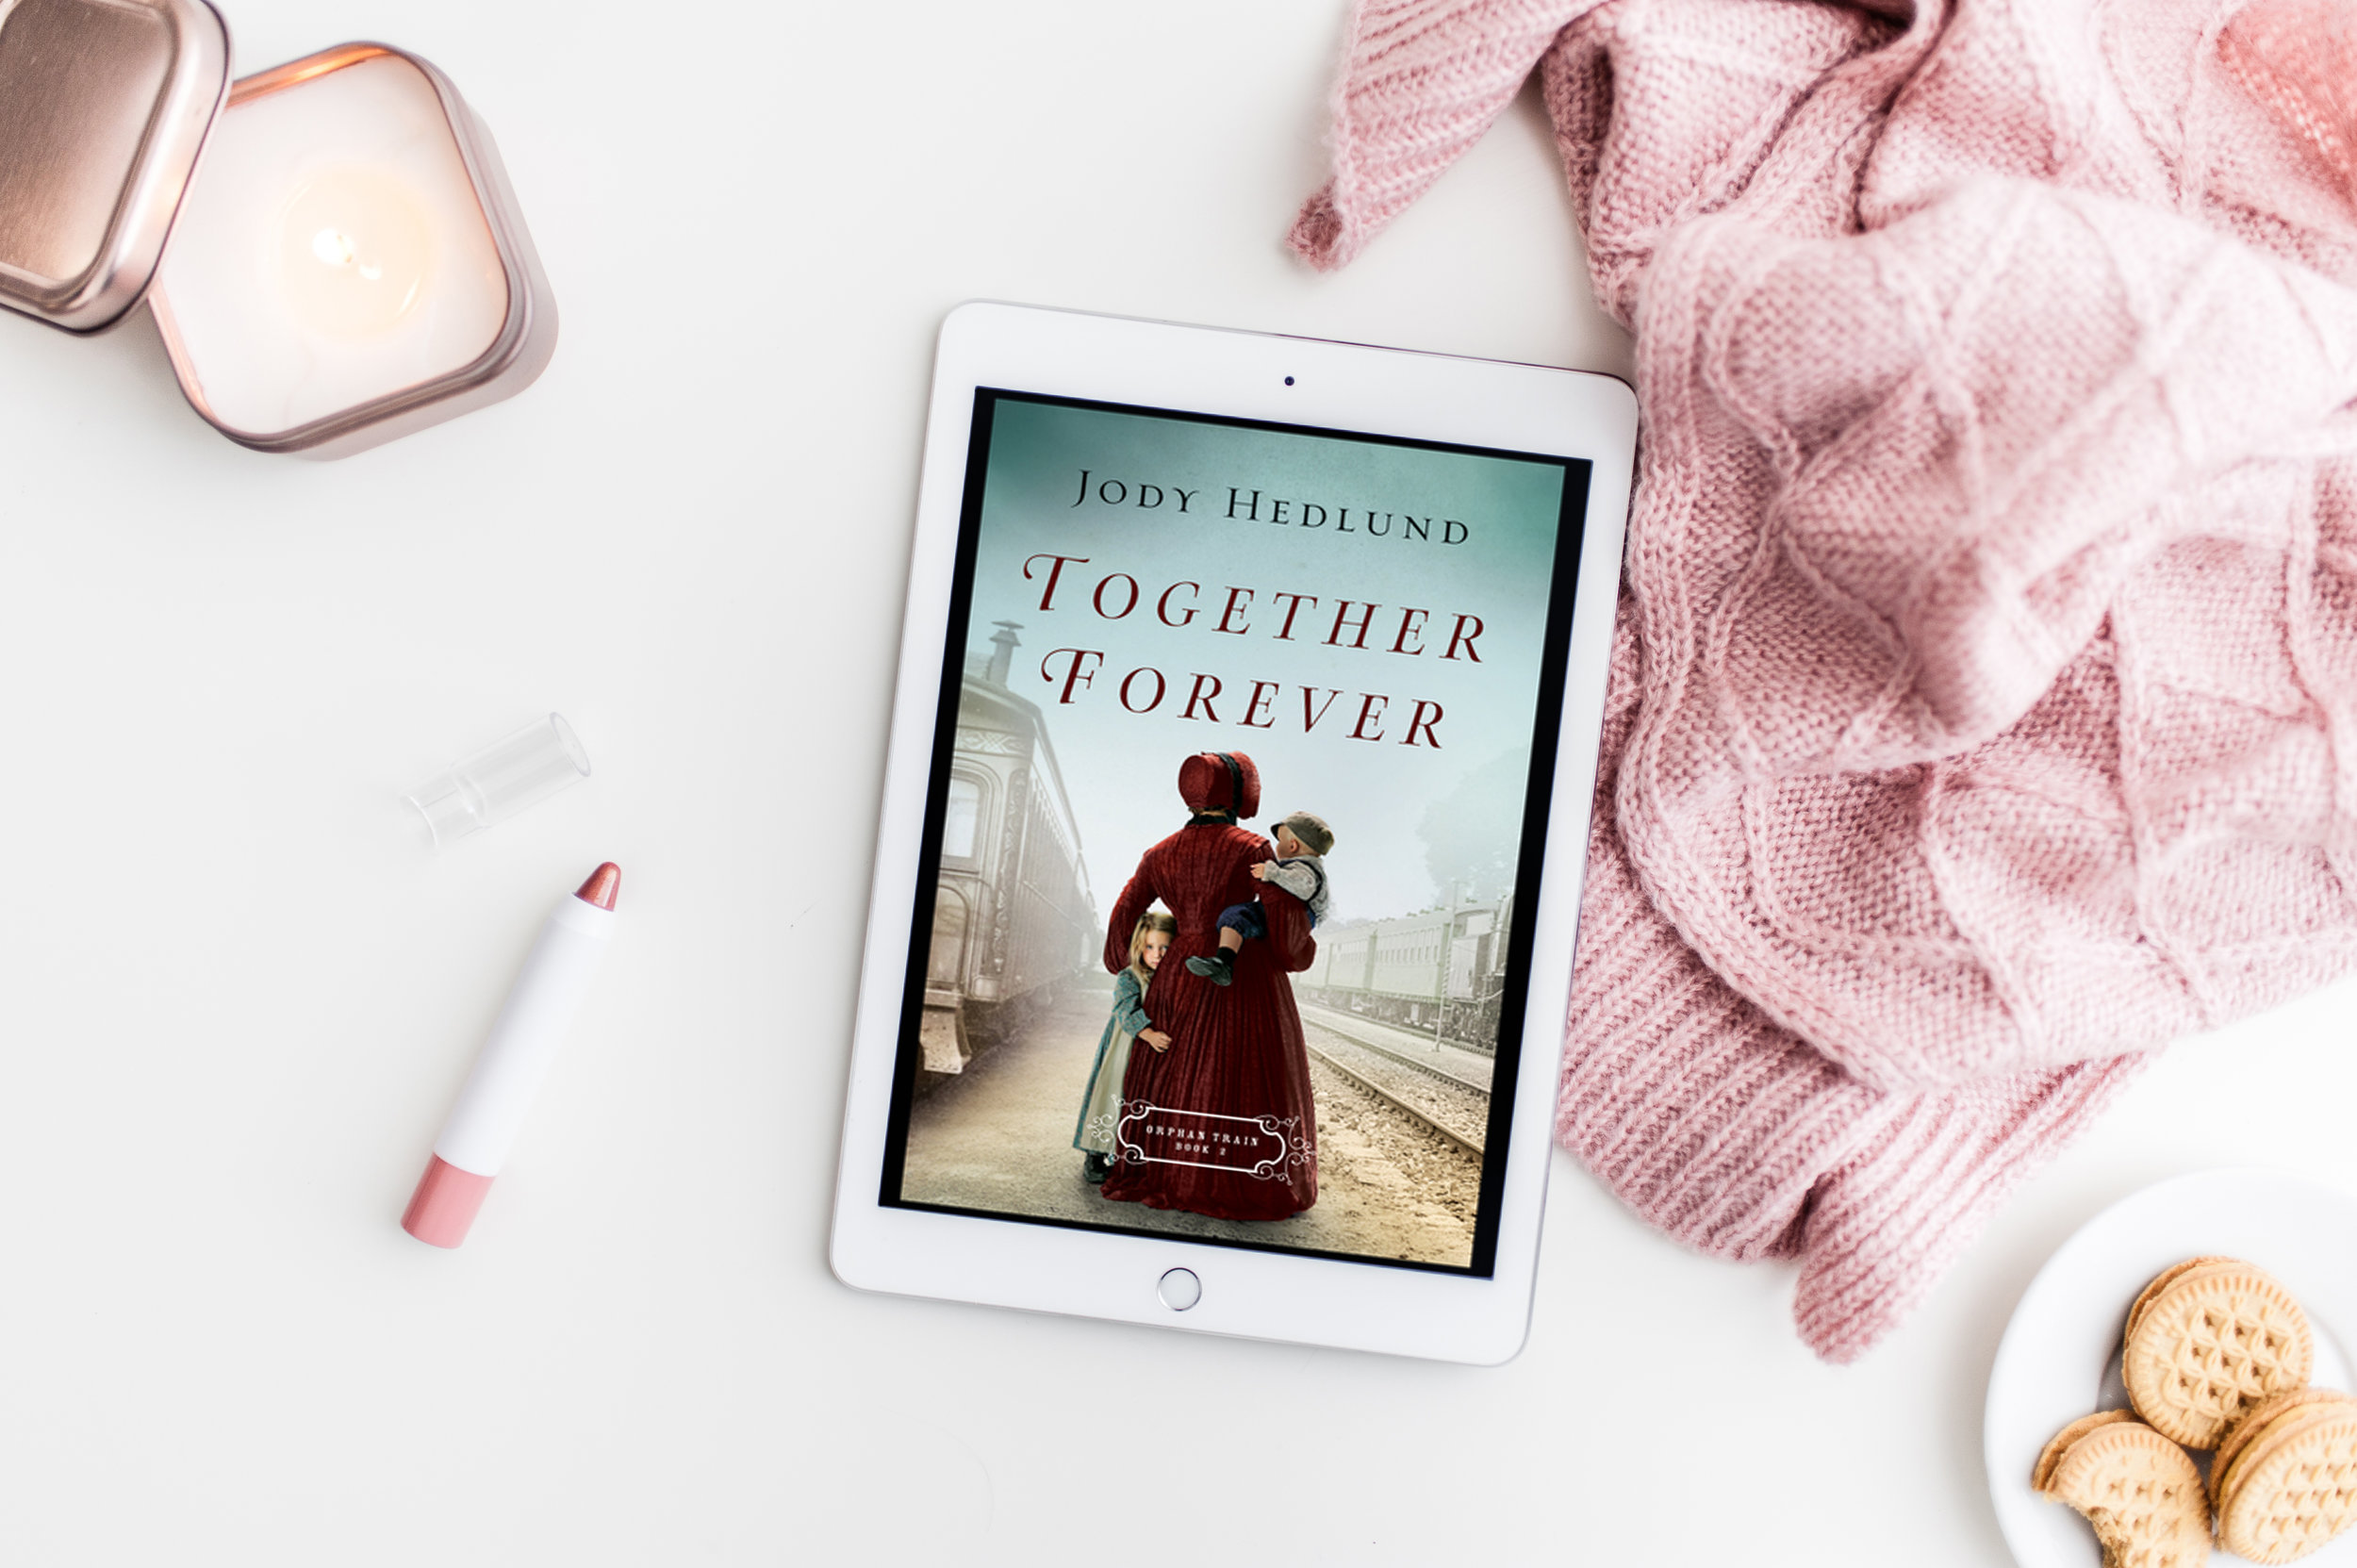 together forever jody hedlund book review